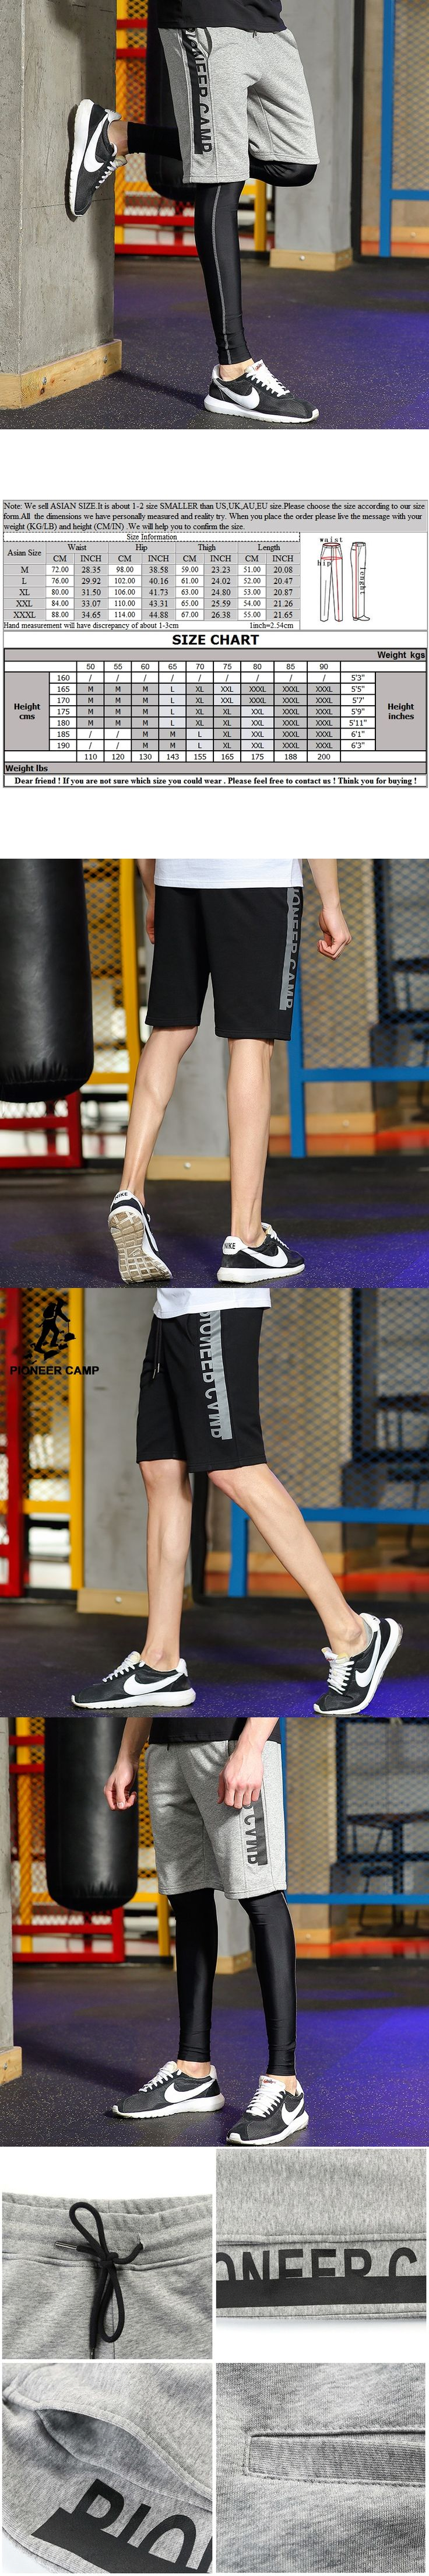 Pioneer Camp New design summer shorts men brand clothing fashion printed workout shorts male top quality black grey ADK701026